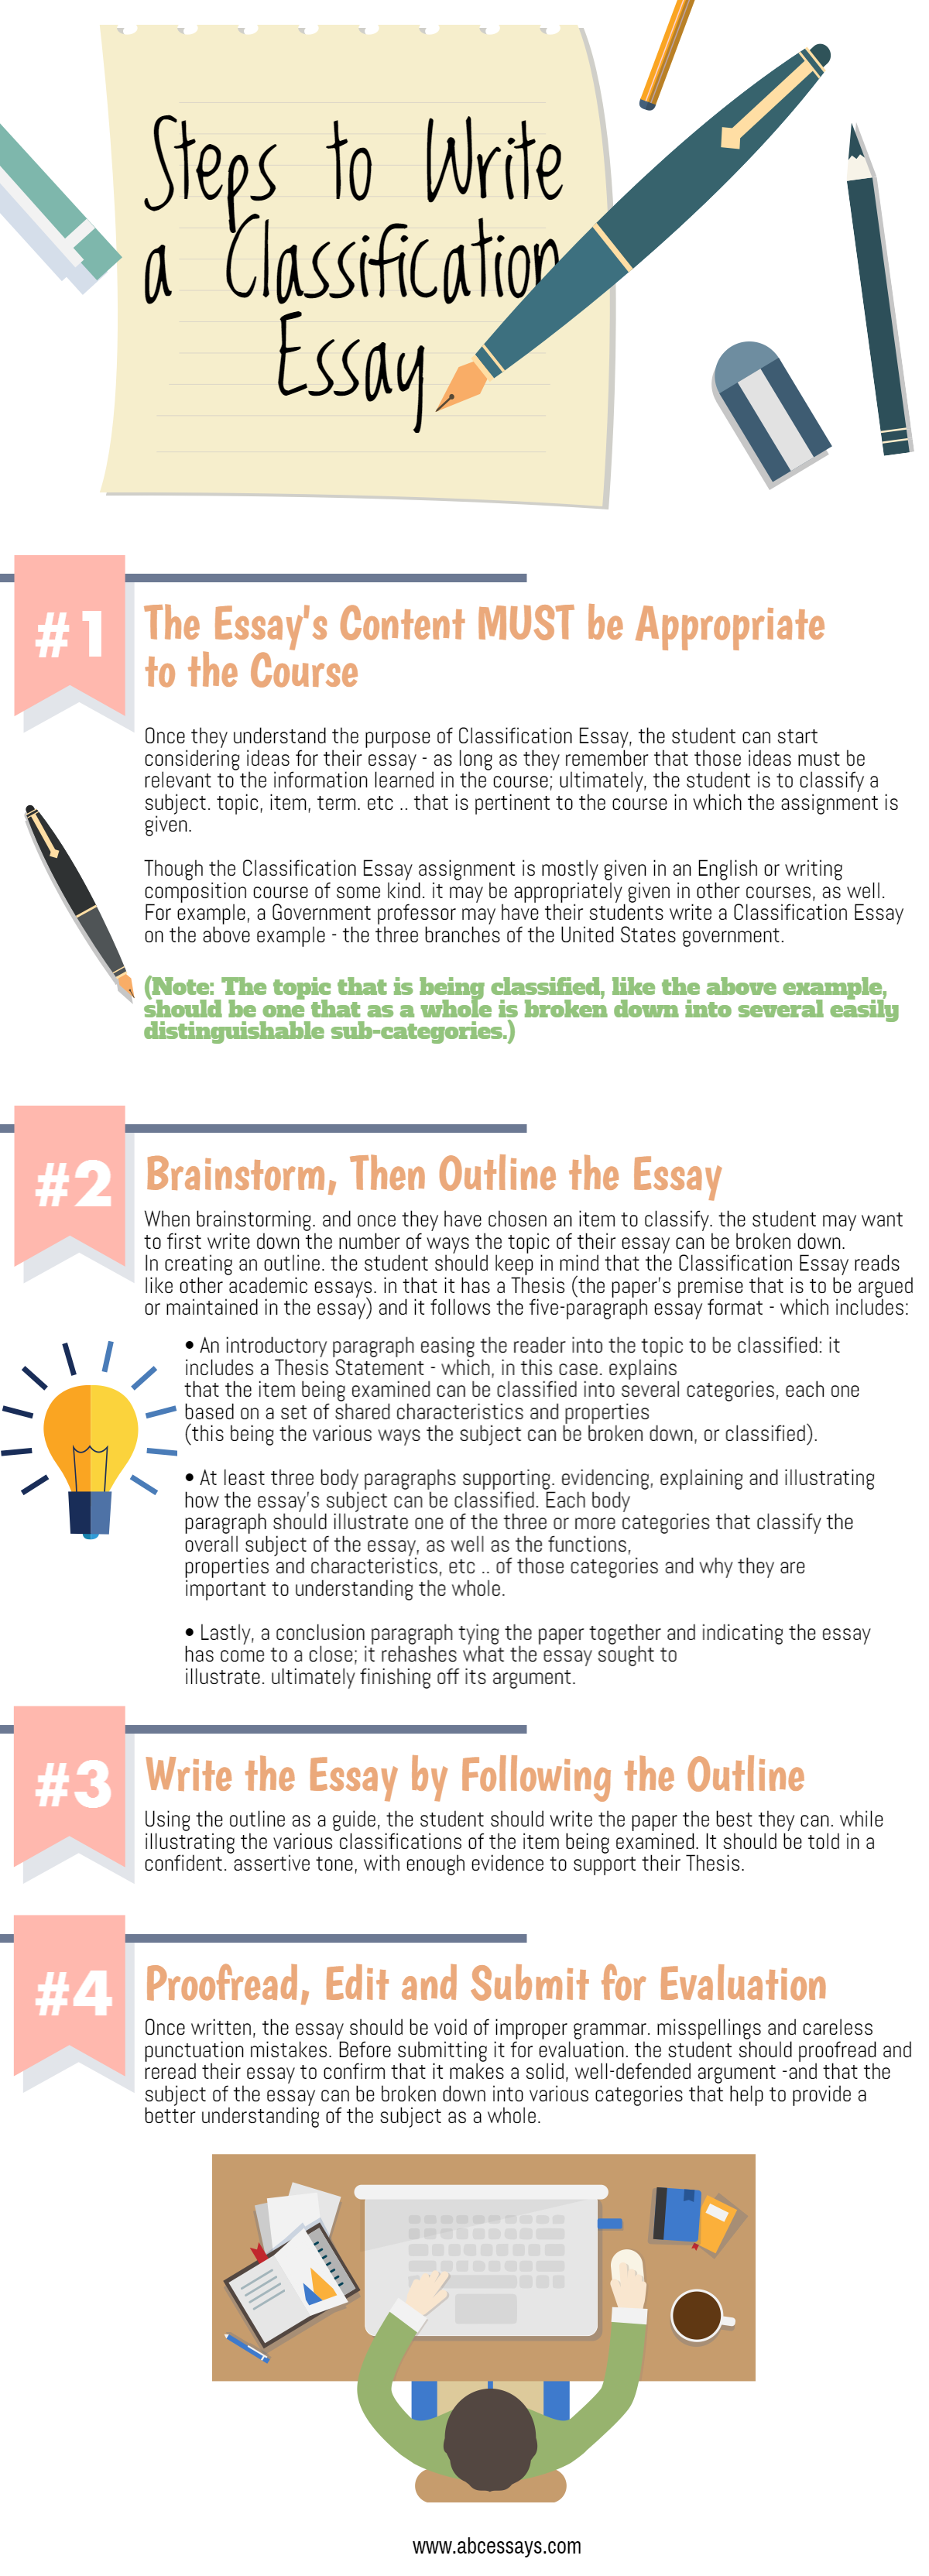 Essay On Ambition How To Write Classification Essay Division Essay Examples Division Essay  Example Classification And Division Essay Classification Byu Application Essay also Plagiarism Essay Example Classification Essay Friends Critical Essay Topics Critical Essay  Good Transitions For An Essay